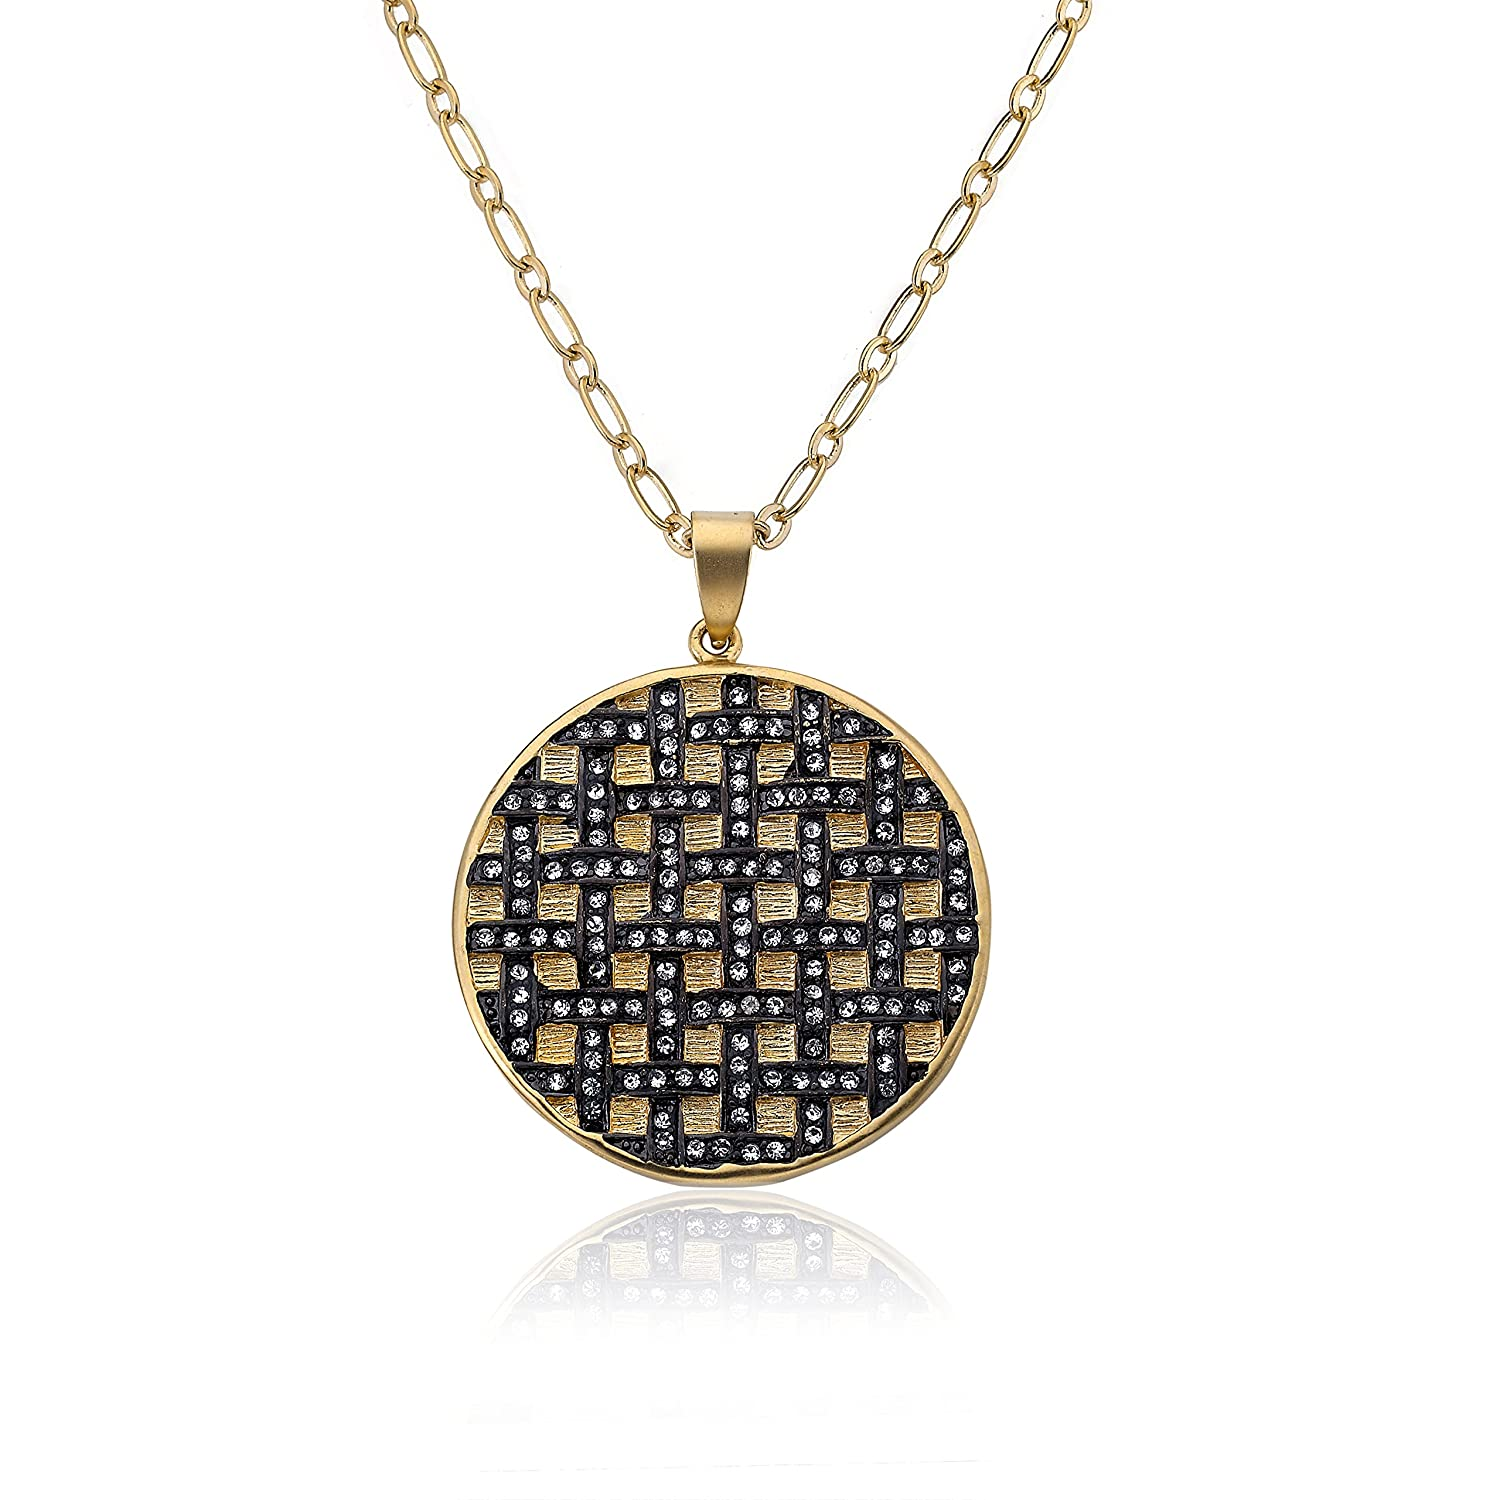 Hypoallergenic and Nickel Free for Sensitive Skin Goldtone Crystal Round Pendant Necklace Riccova Womens Jewelry